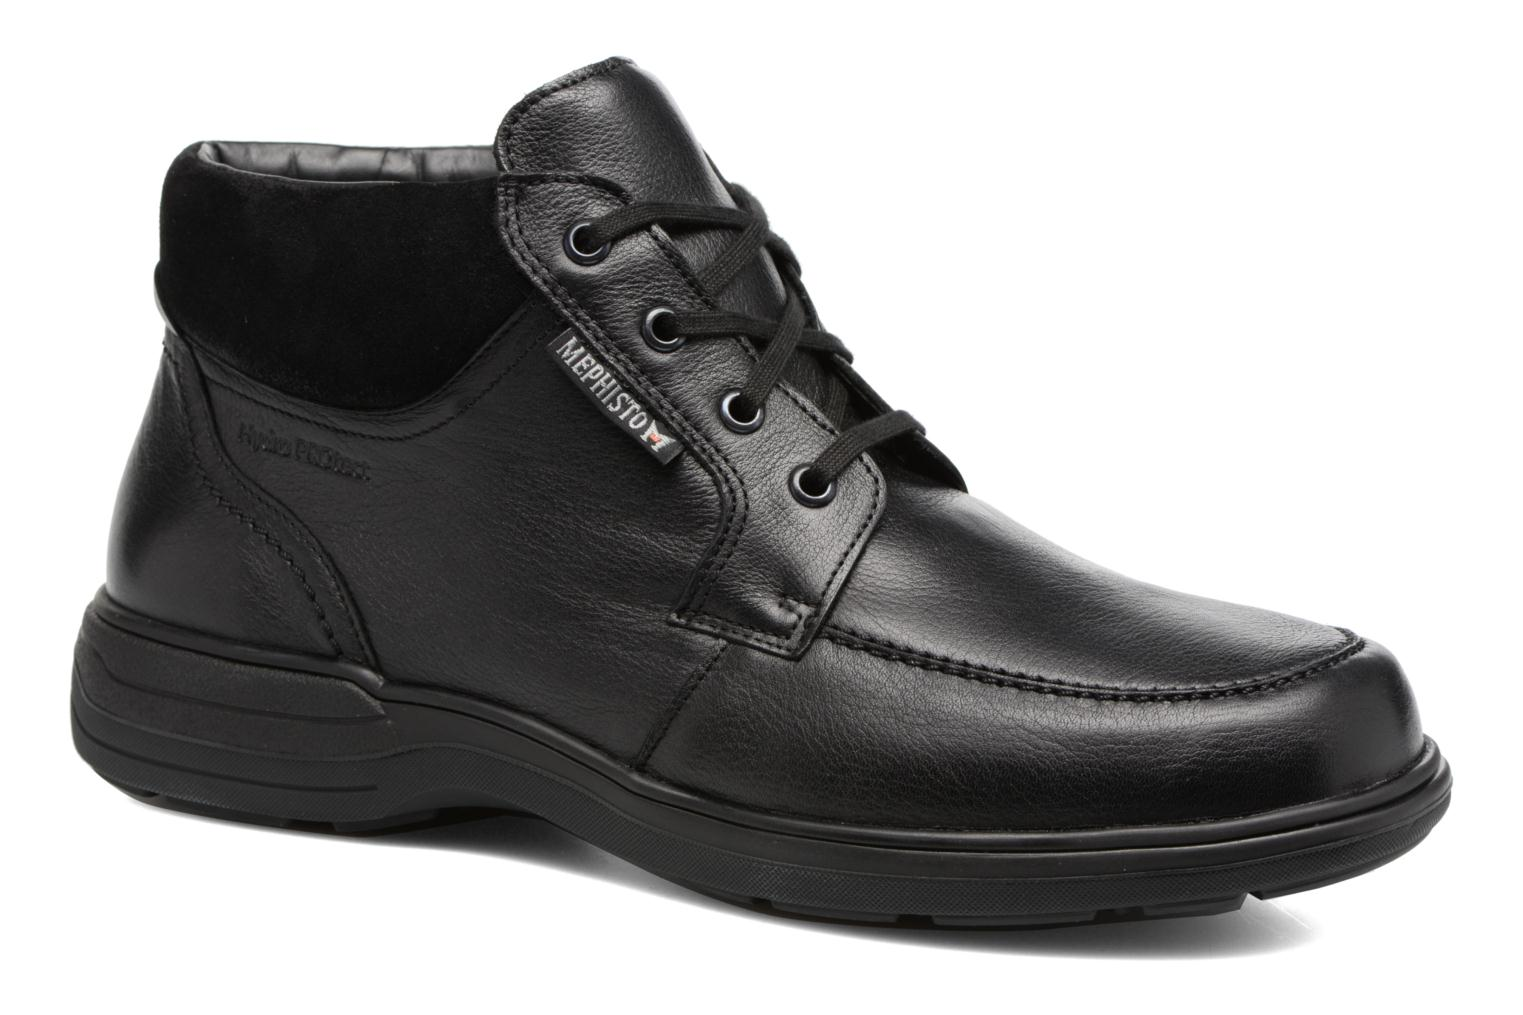 Marques Chaussure homme Mephisto homme Darwin Black